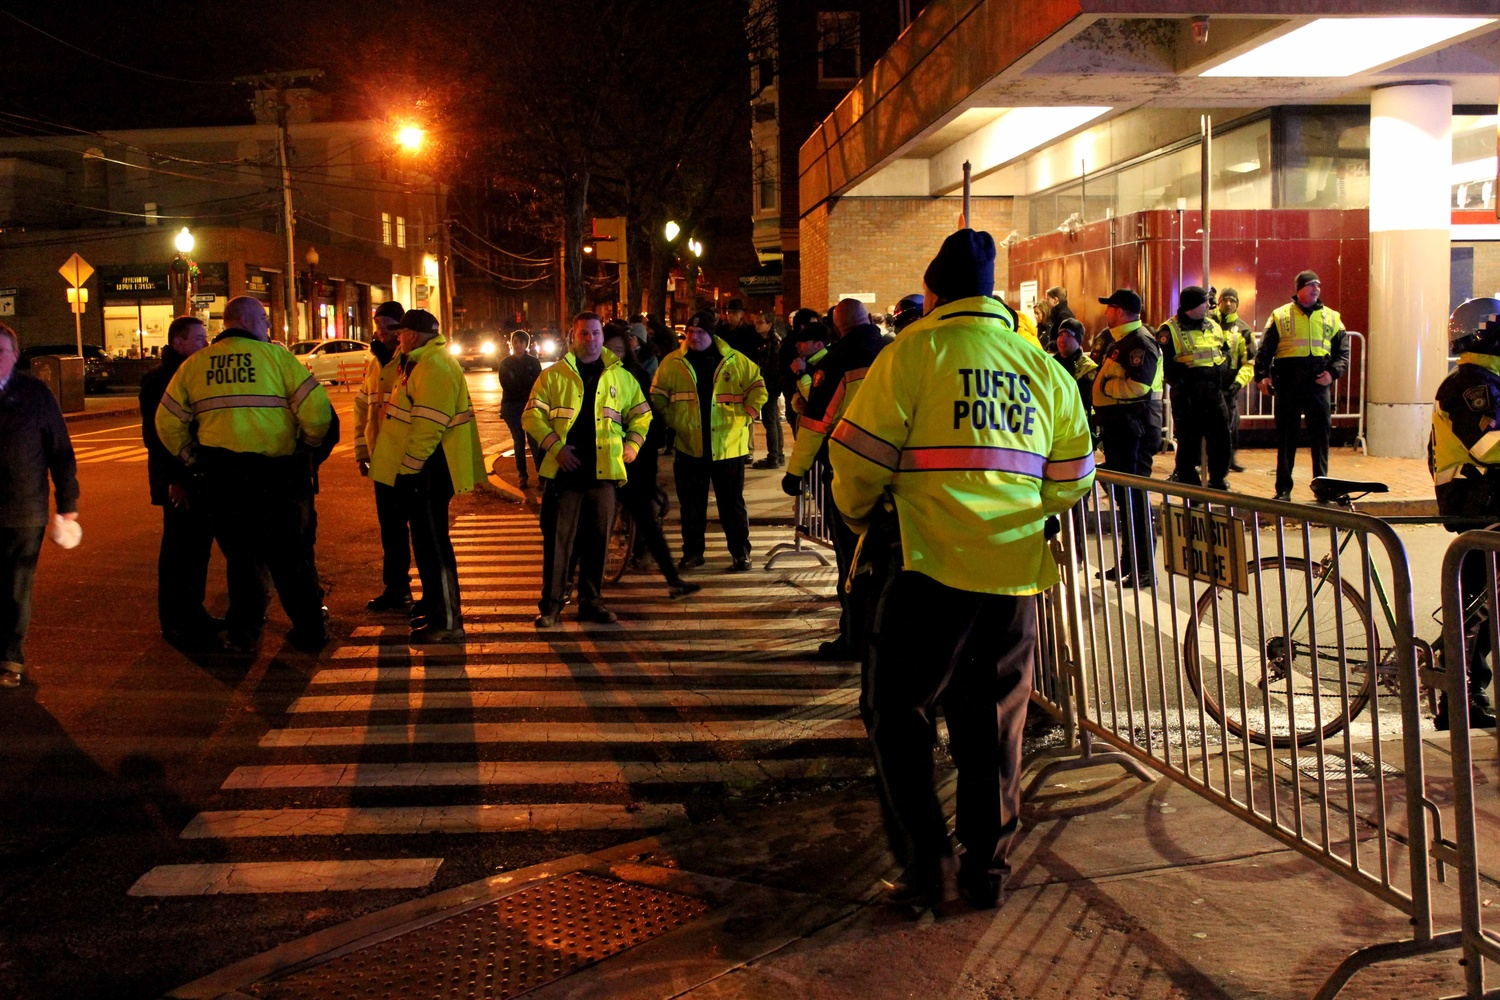 Tufts Police stand near the Davis Square T Station on Friday evening during protests of the recent non-indictments of the officers in the Michael Brown and Eric Garner cases. Protestors began in Davis Square and continued to MIT, laying down at key transportation sites.